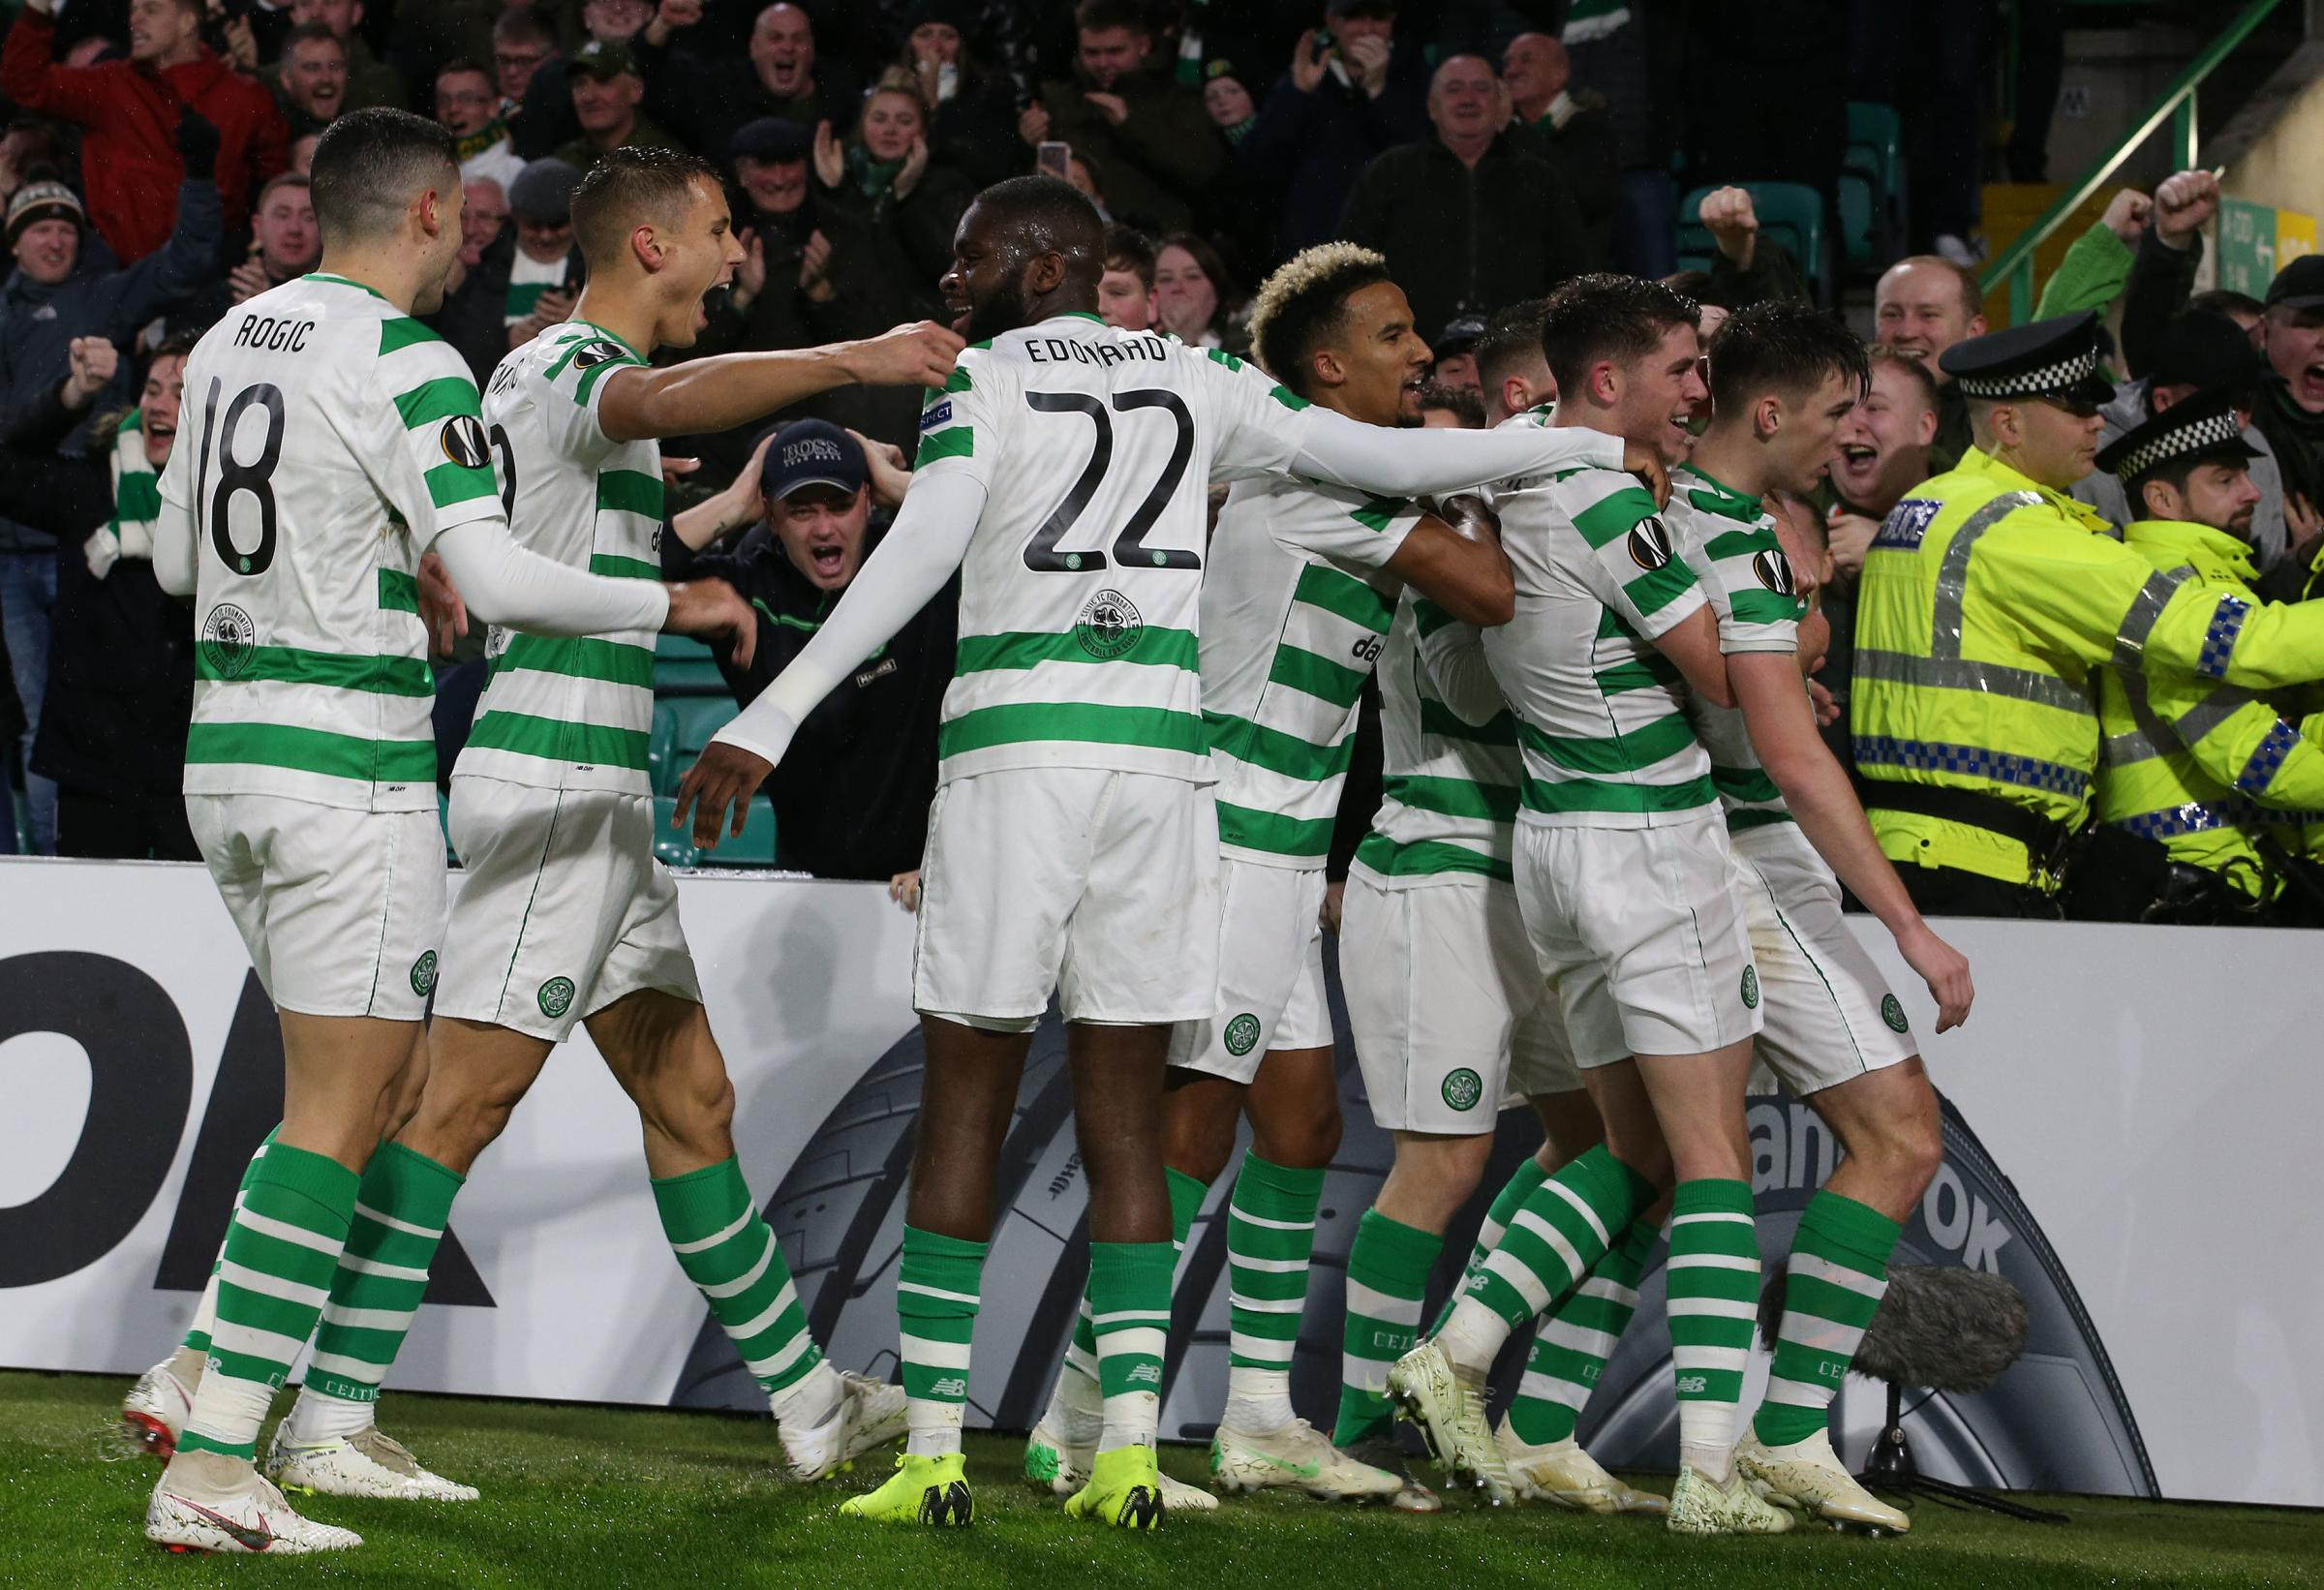 Kieran Tierney was impressive in Celtic's win over RB Leipzig, scoring the winning goal.